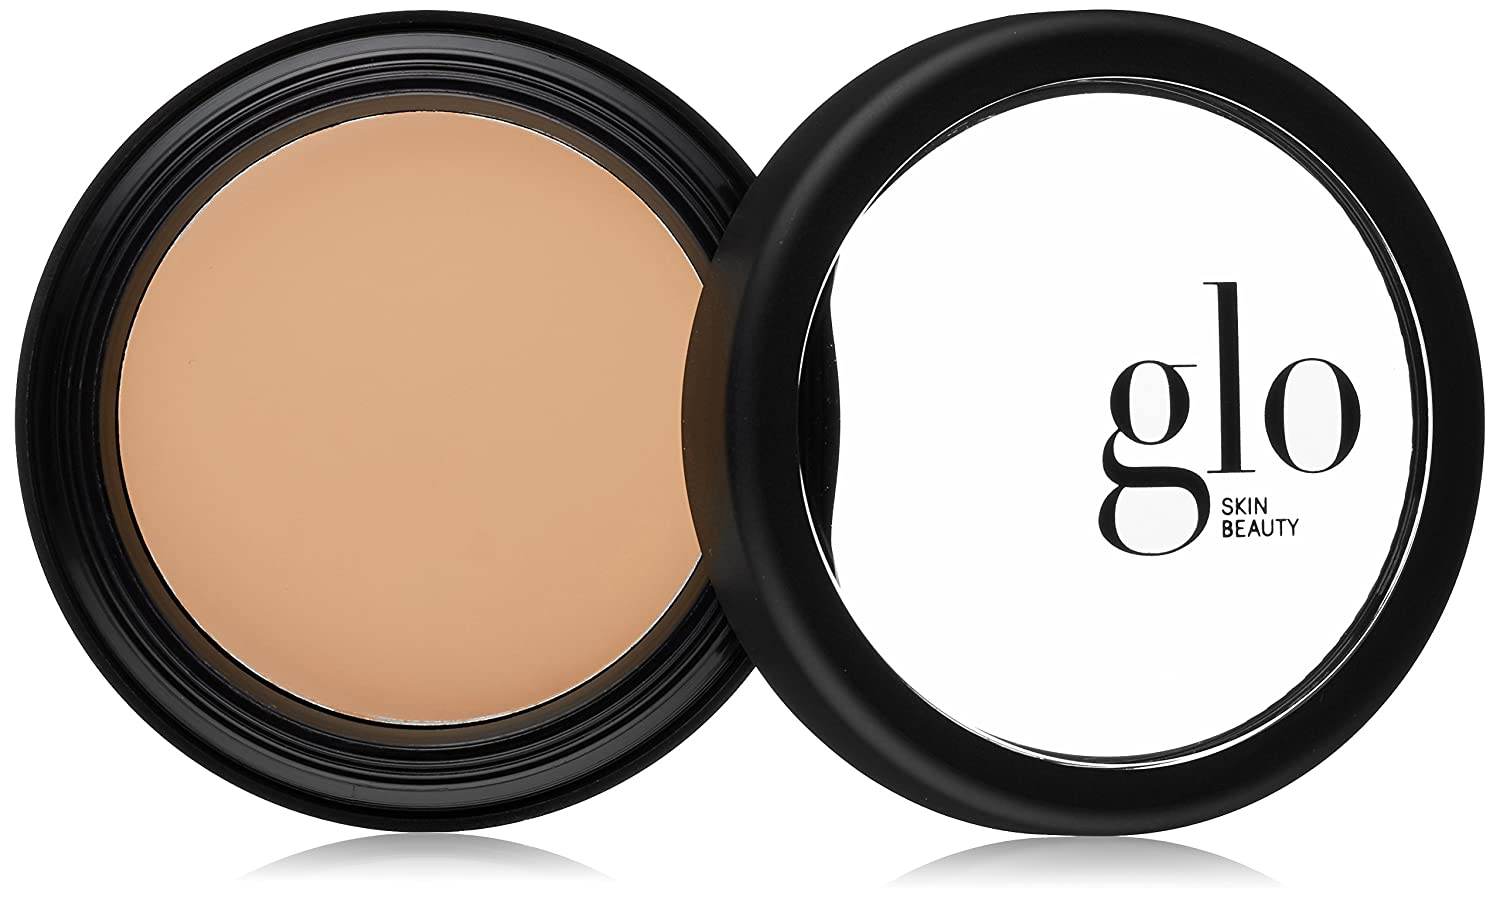 Glo Skin Beauty Oil-Free Concealer